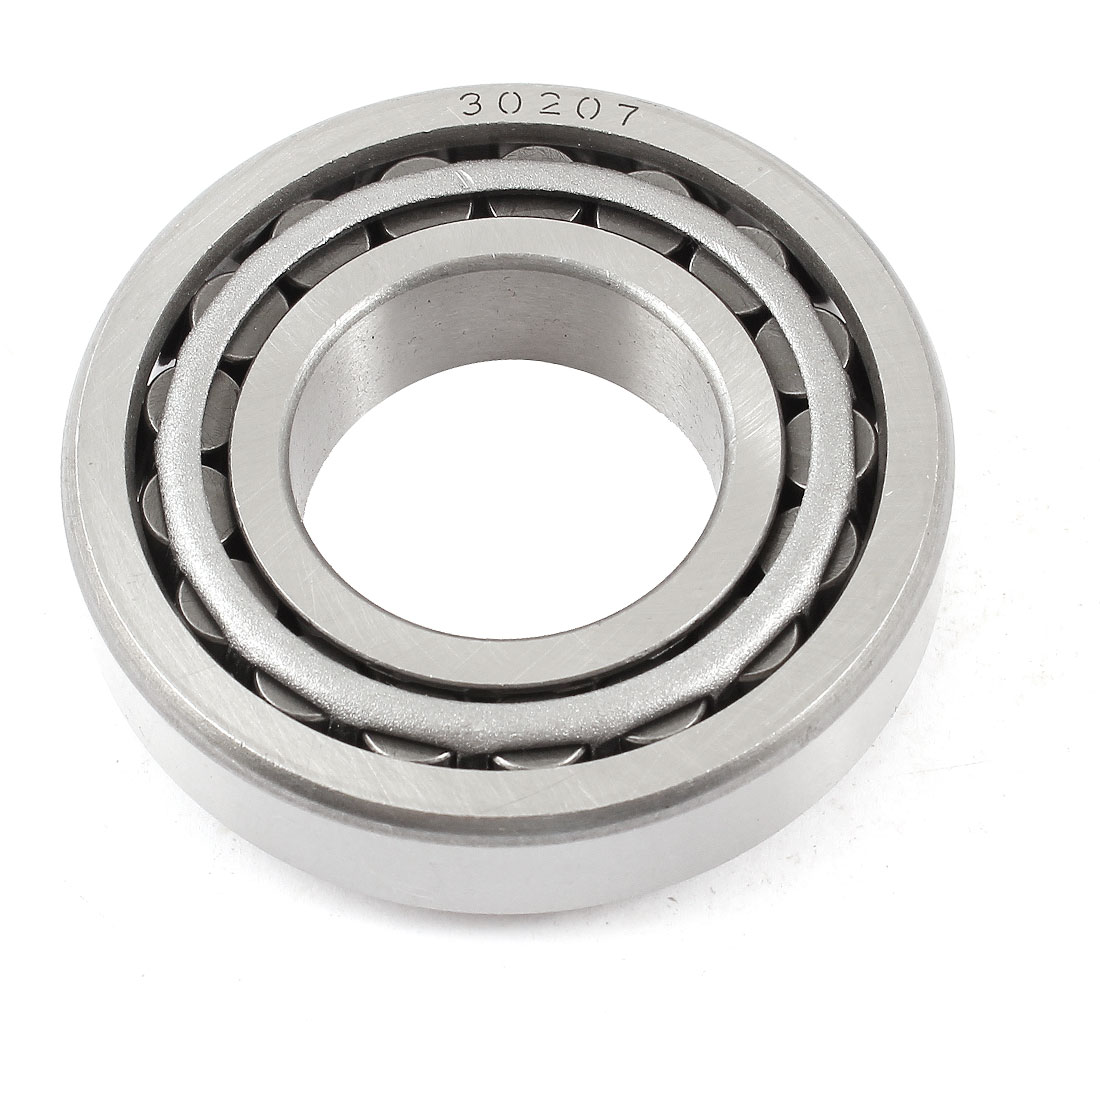 30207 Steering Head Set Tapered Roller Bearings 35mm x 72mm x 18mm